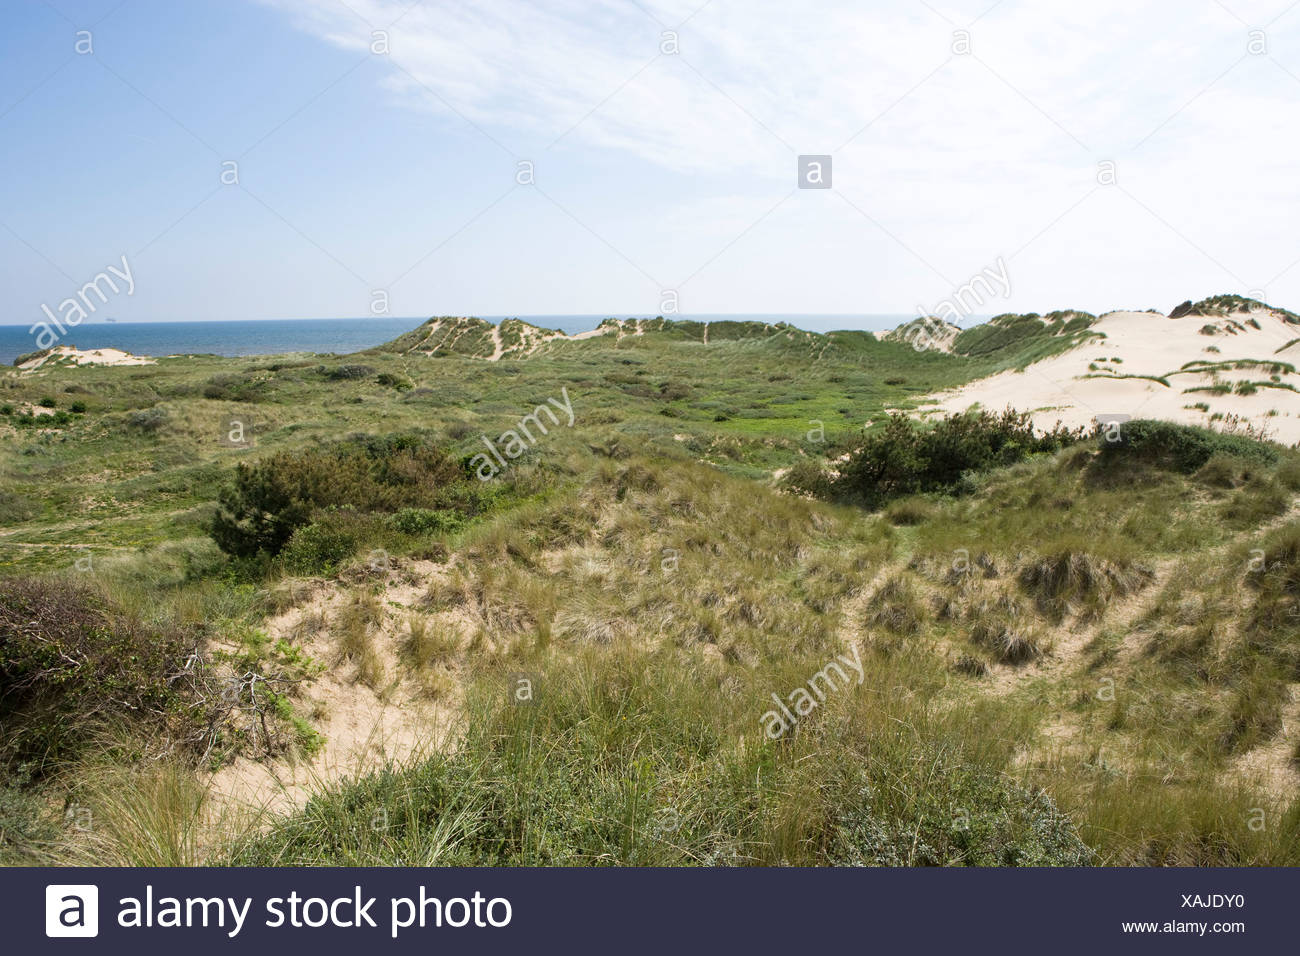 scrub and marram grass growing in an area of stable sand dunes. Formby - Stock Image